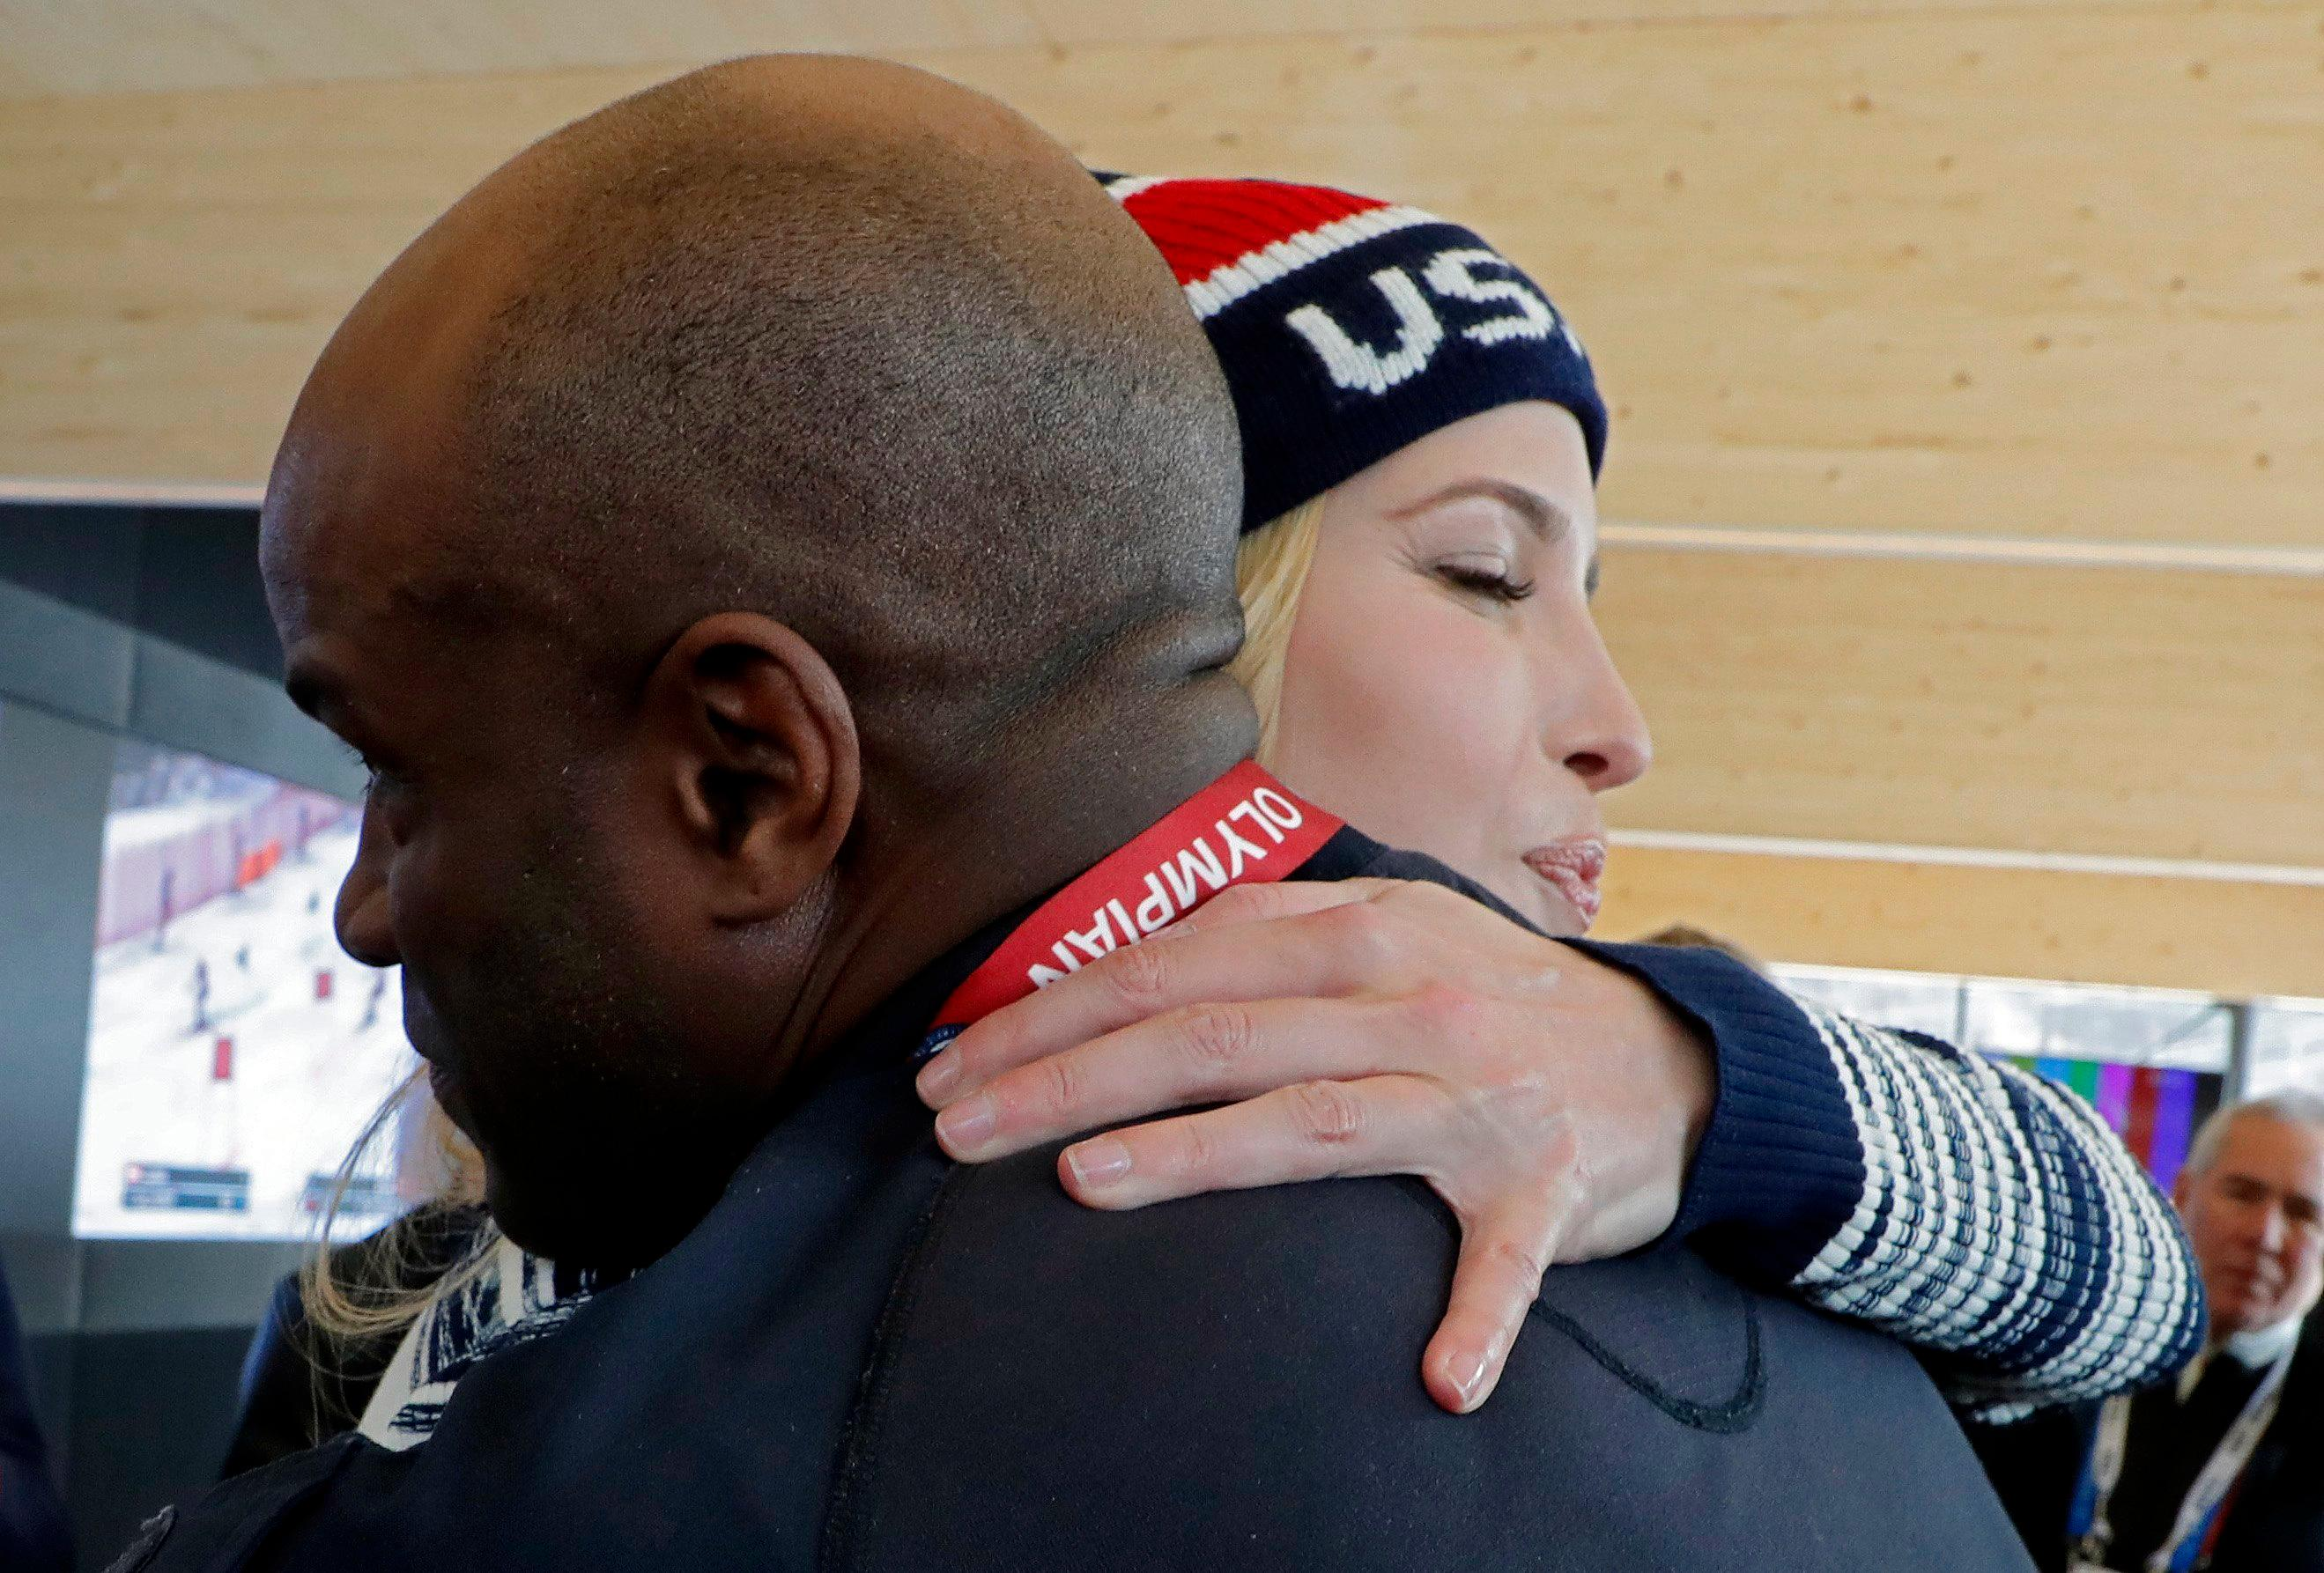 Ivanka Trump, daughter of U.S. President Donald Trump and senior White House adviser, hugs former U.S. bobsledder Garrett Hines while visiting USA House during the 2018 Winter Olympics on Saturday, Feb. 24, 2018, in Pyeongchang, South Korea. (Eric Gaillard/Pool Photo via AP)